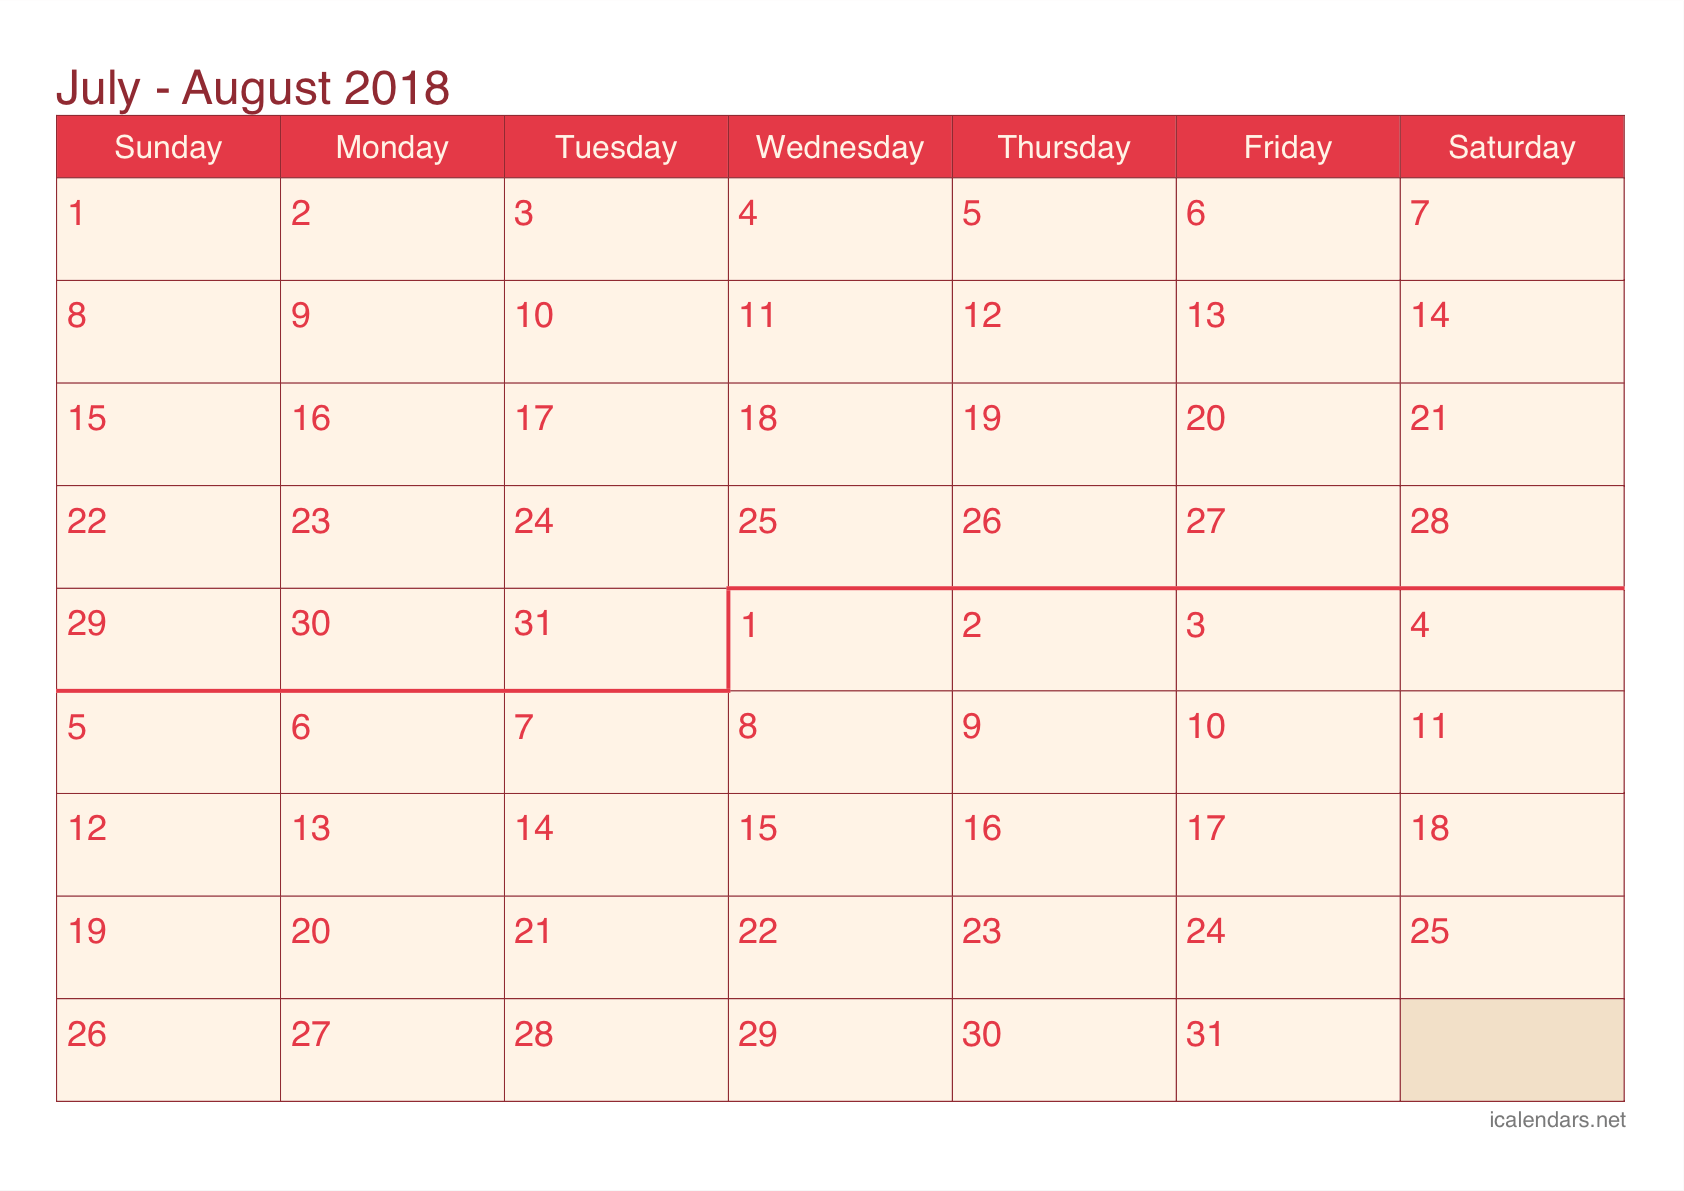 Calendar June July Aug : July and august printable calendar icalendars